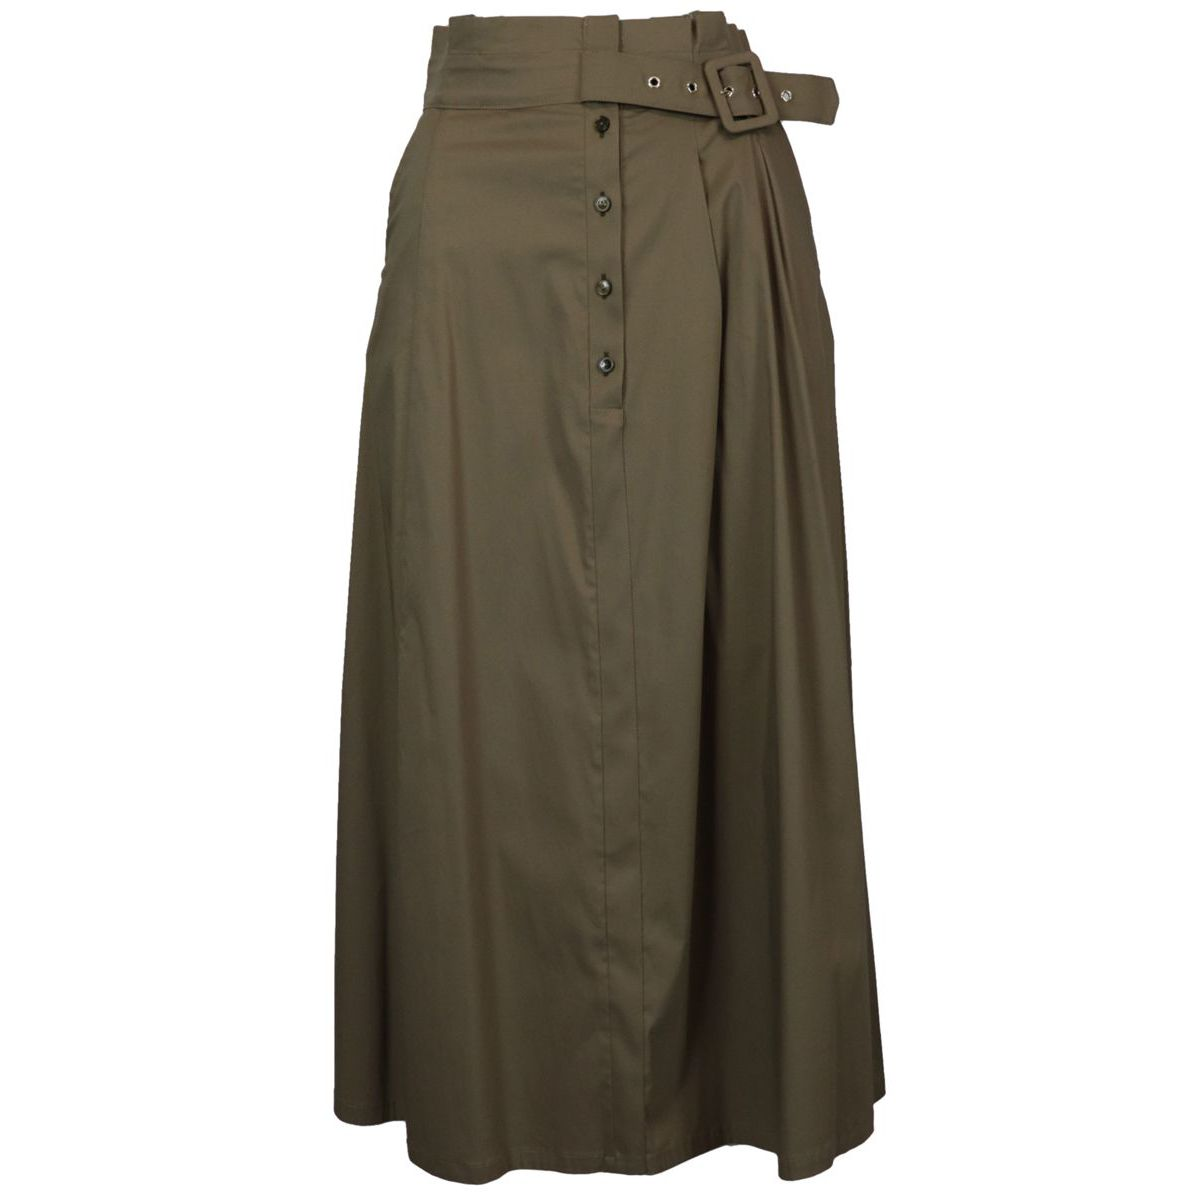 Midì wide skirt with high waist with belt and buttons Military Patrizia Pepe